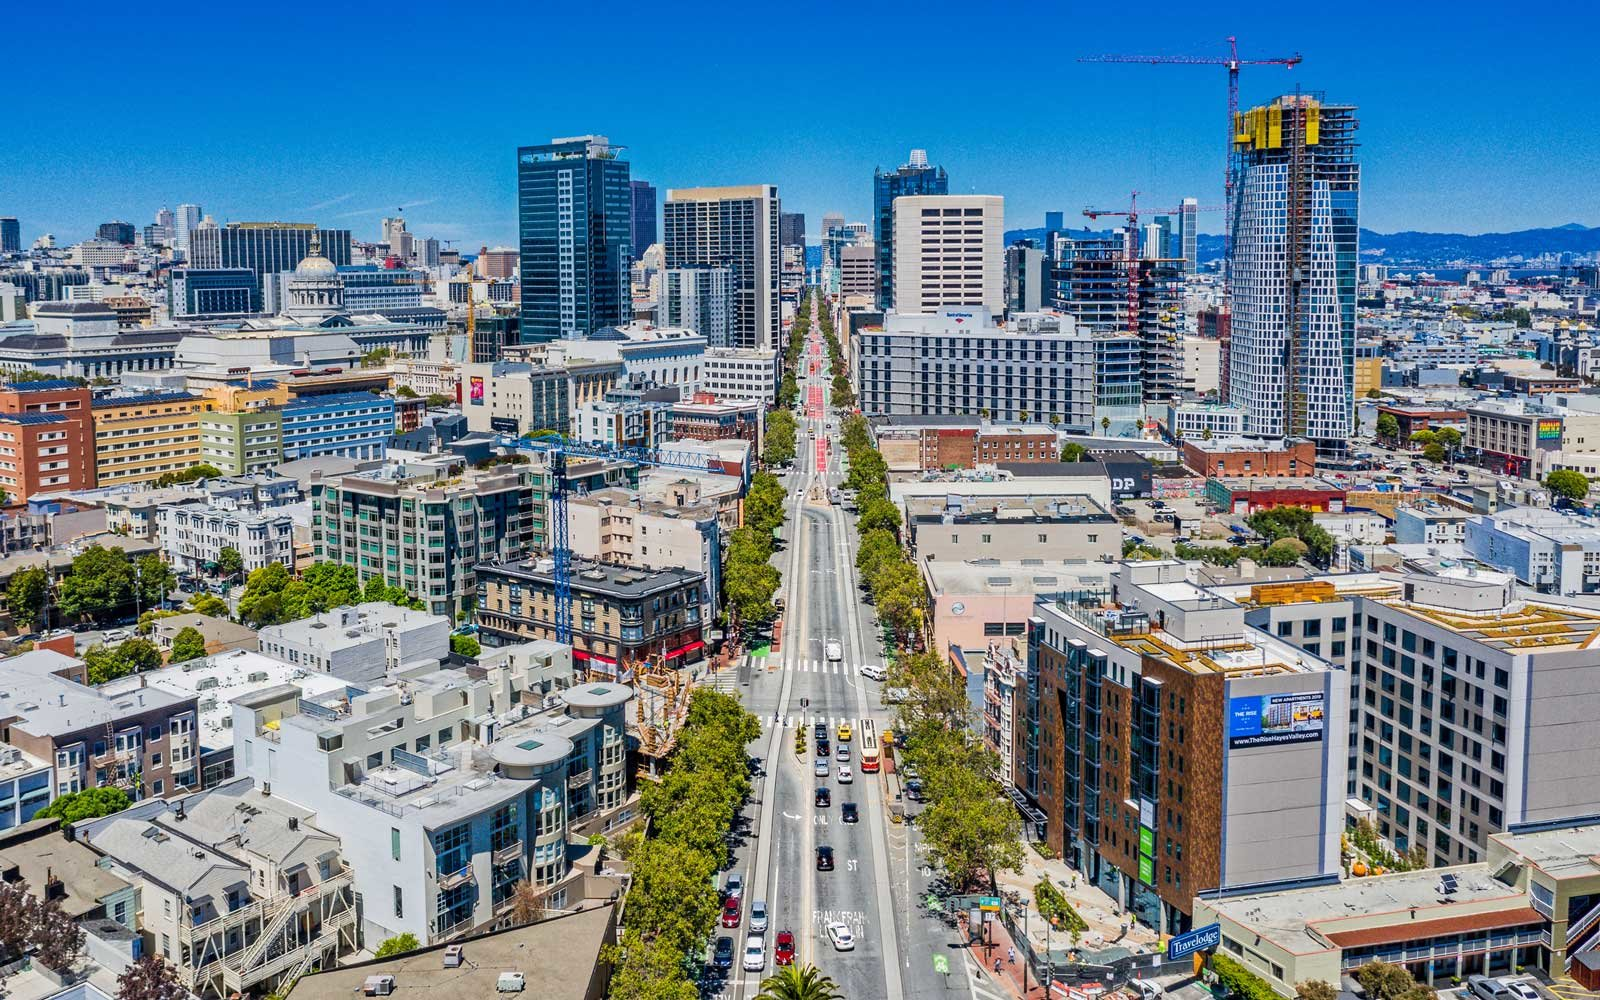 San Francisco will be closing Market Street to private vehicles in 2020